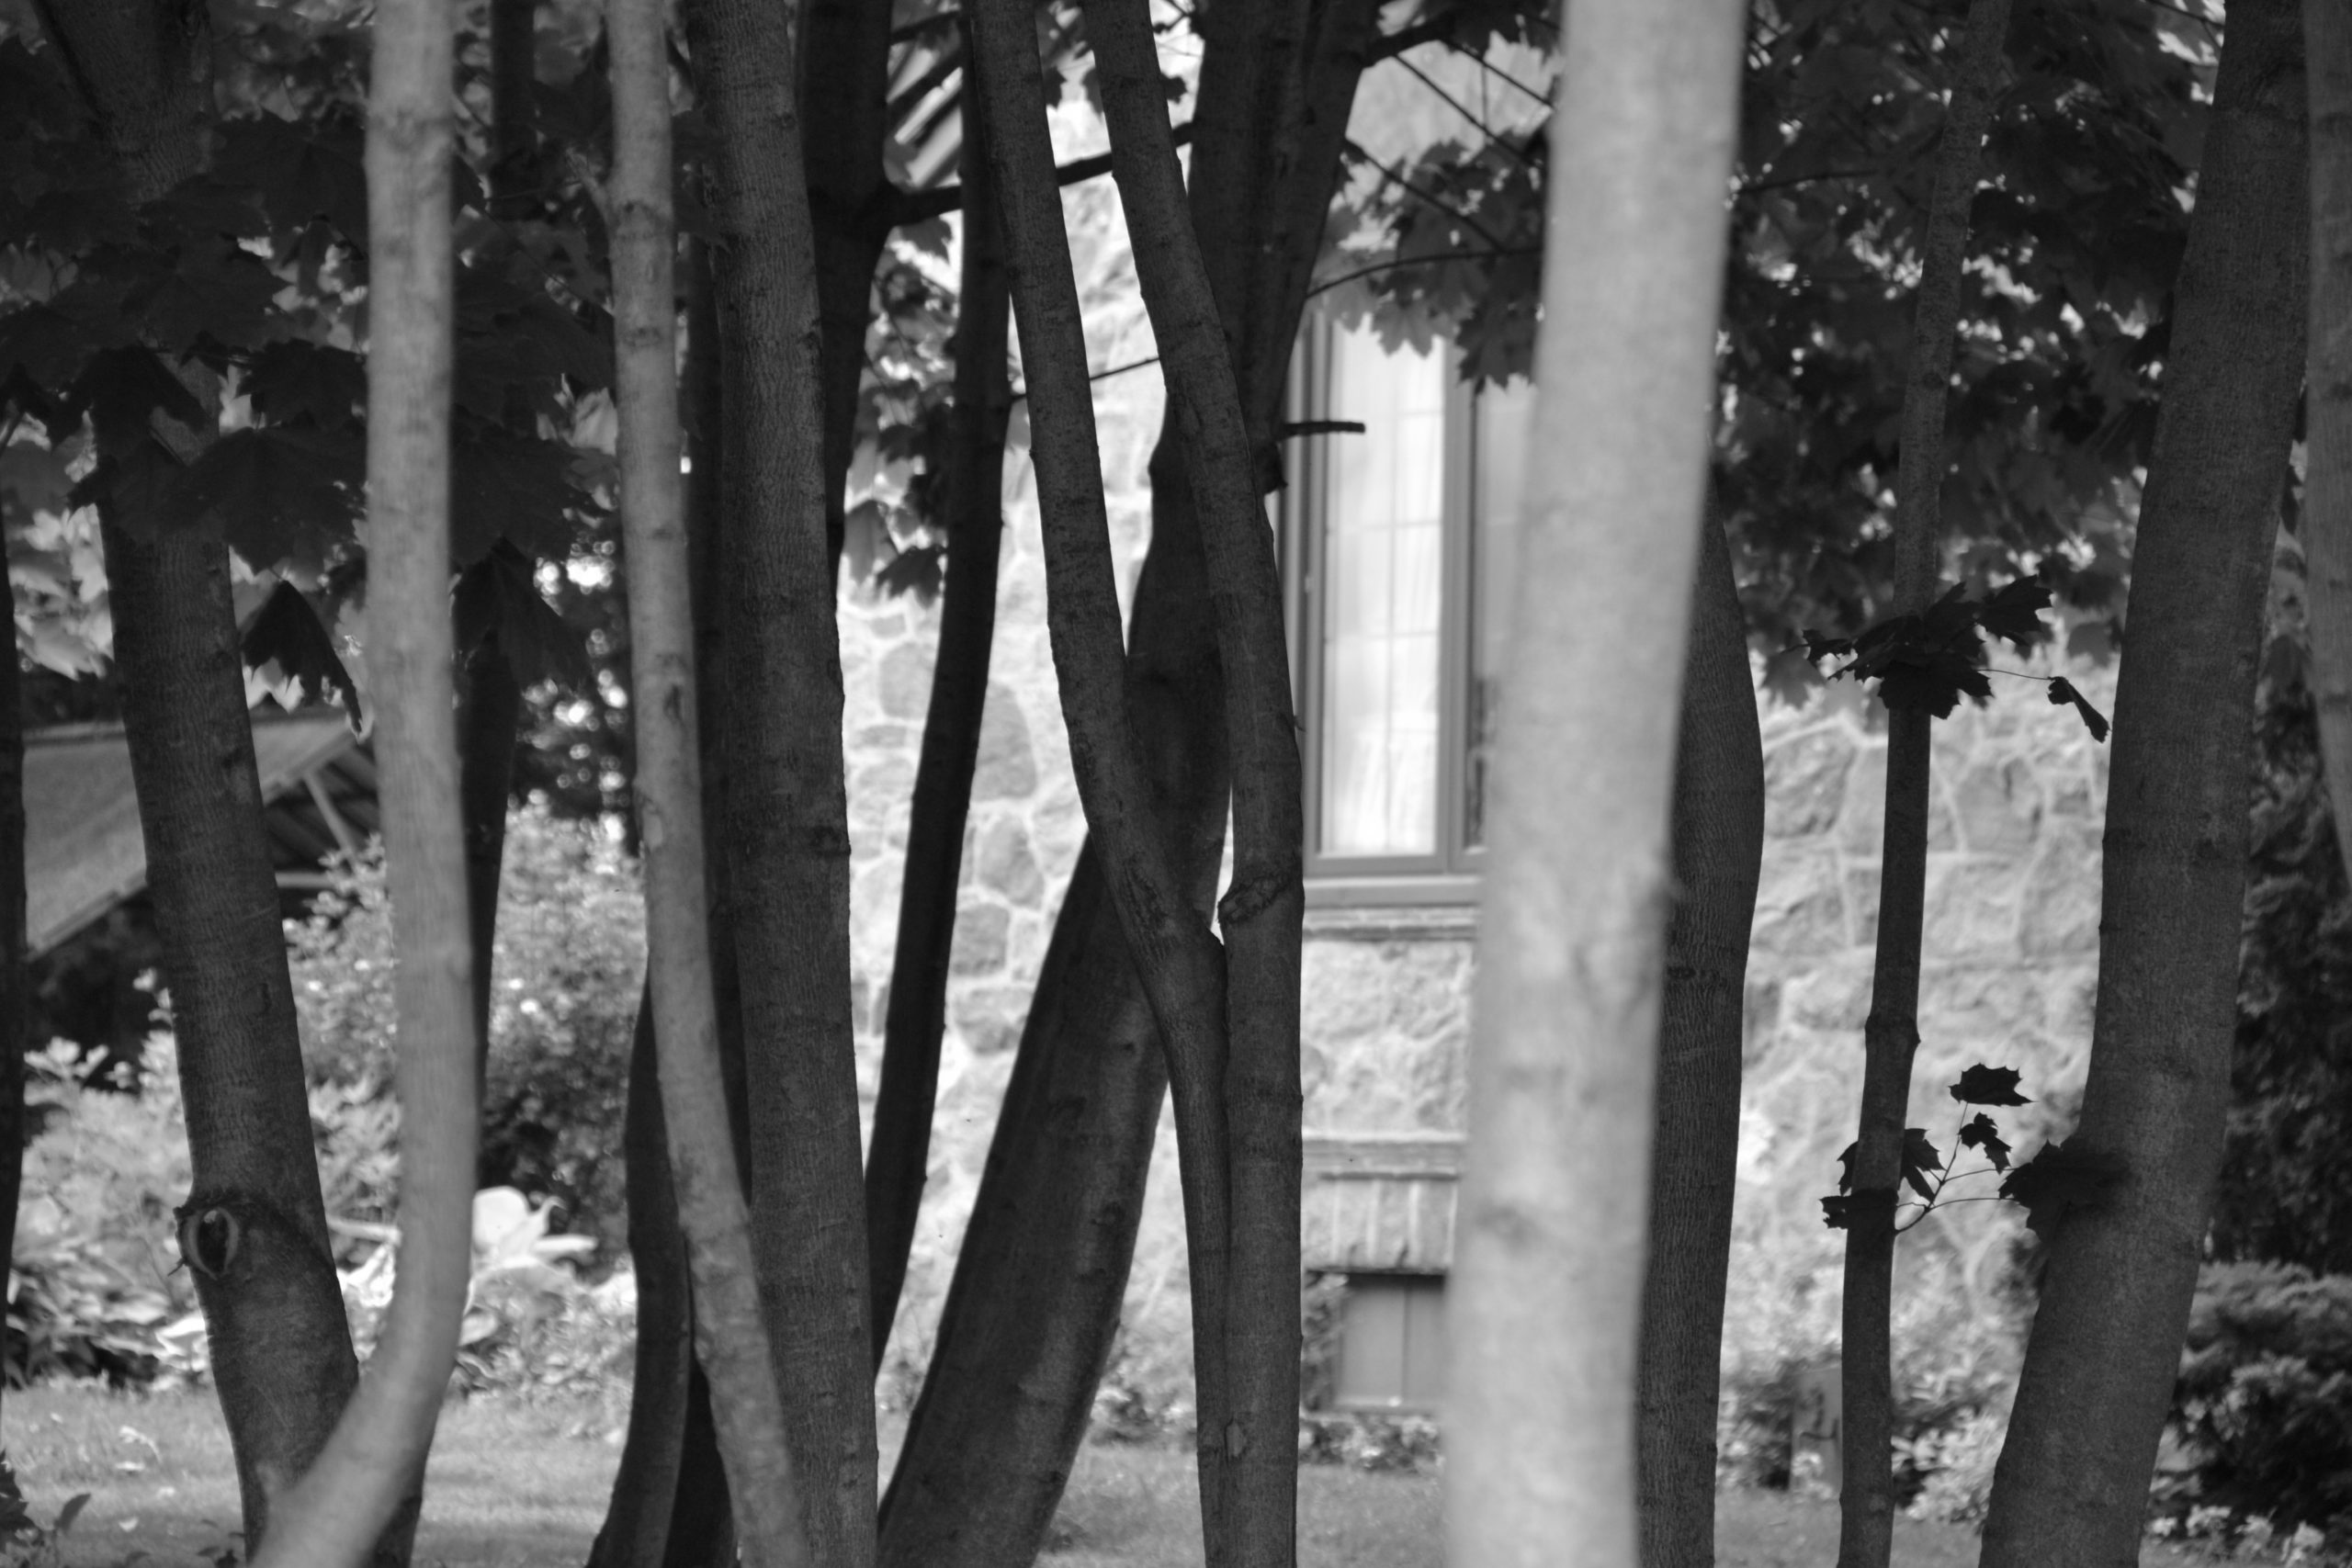 Photo of trees in black and white in front of a window.